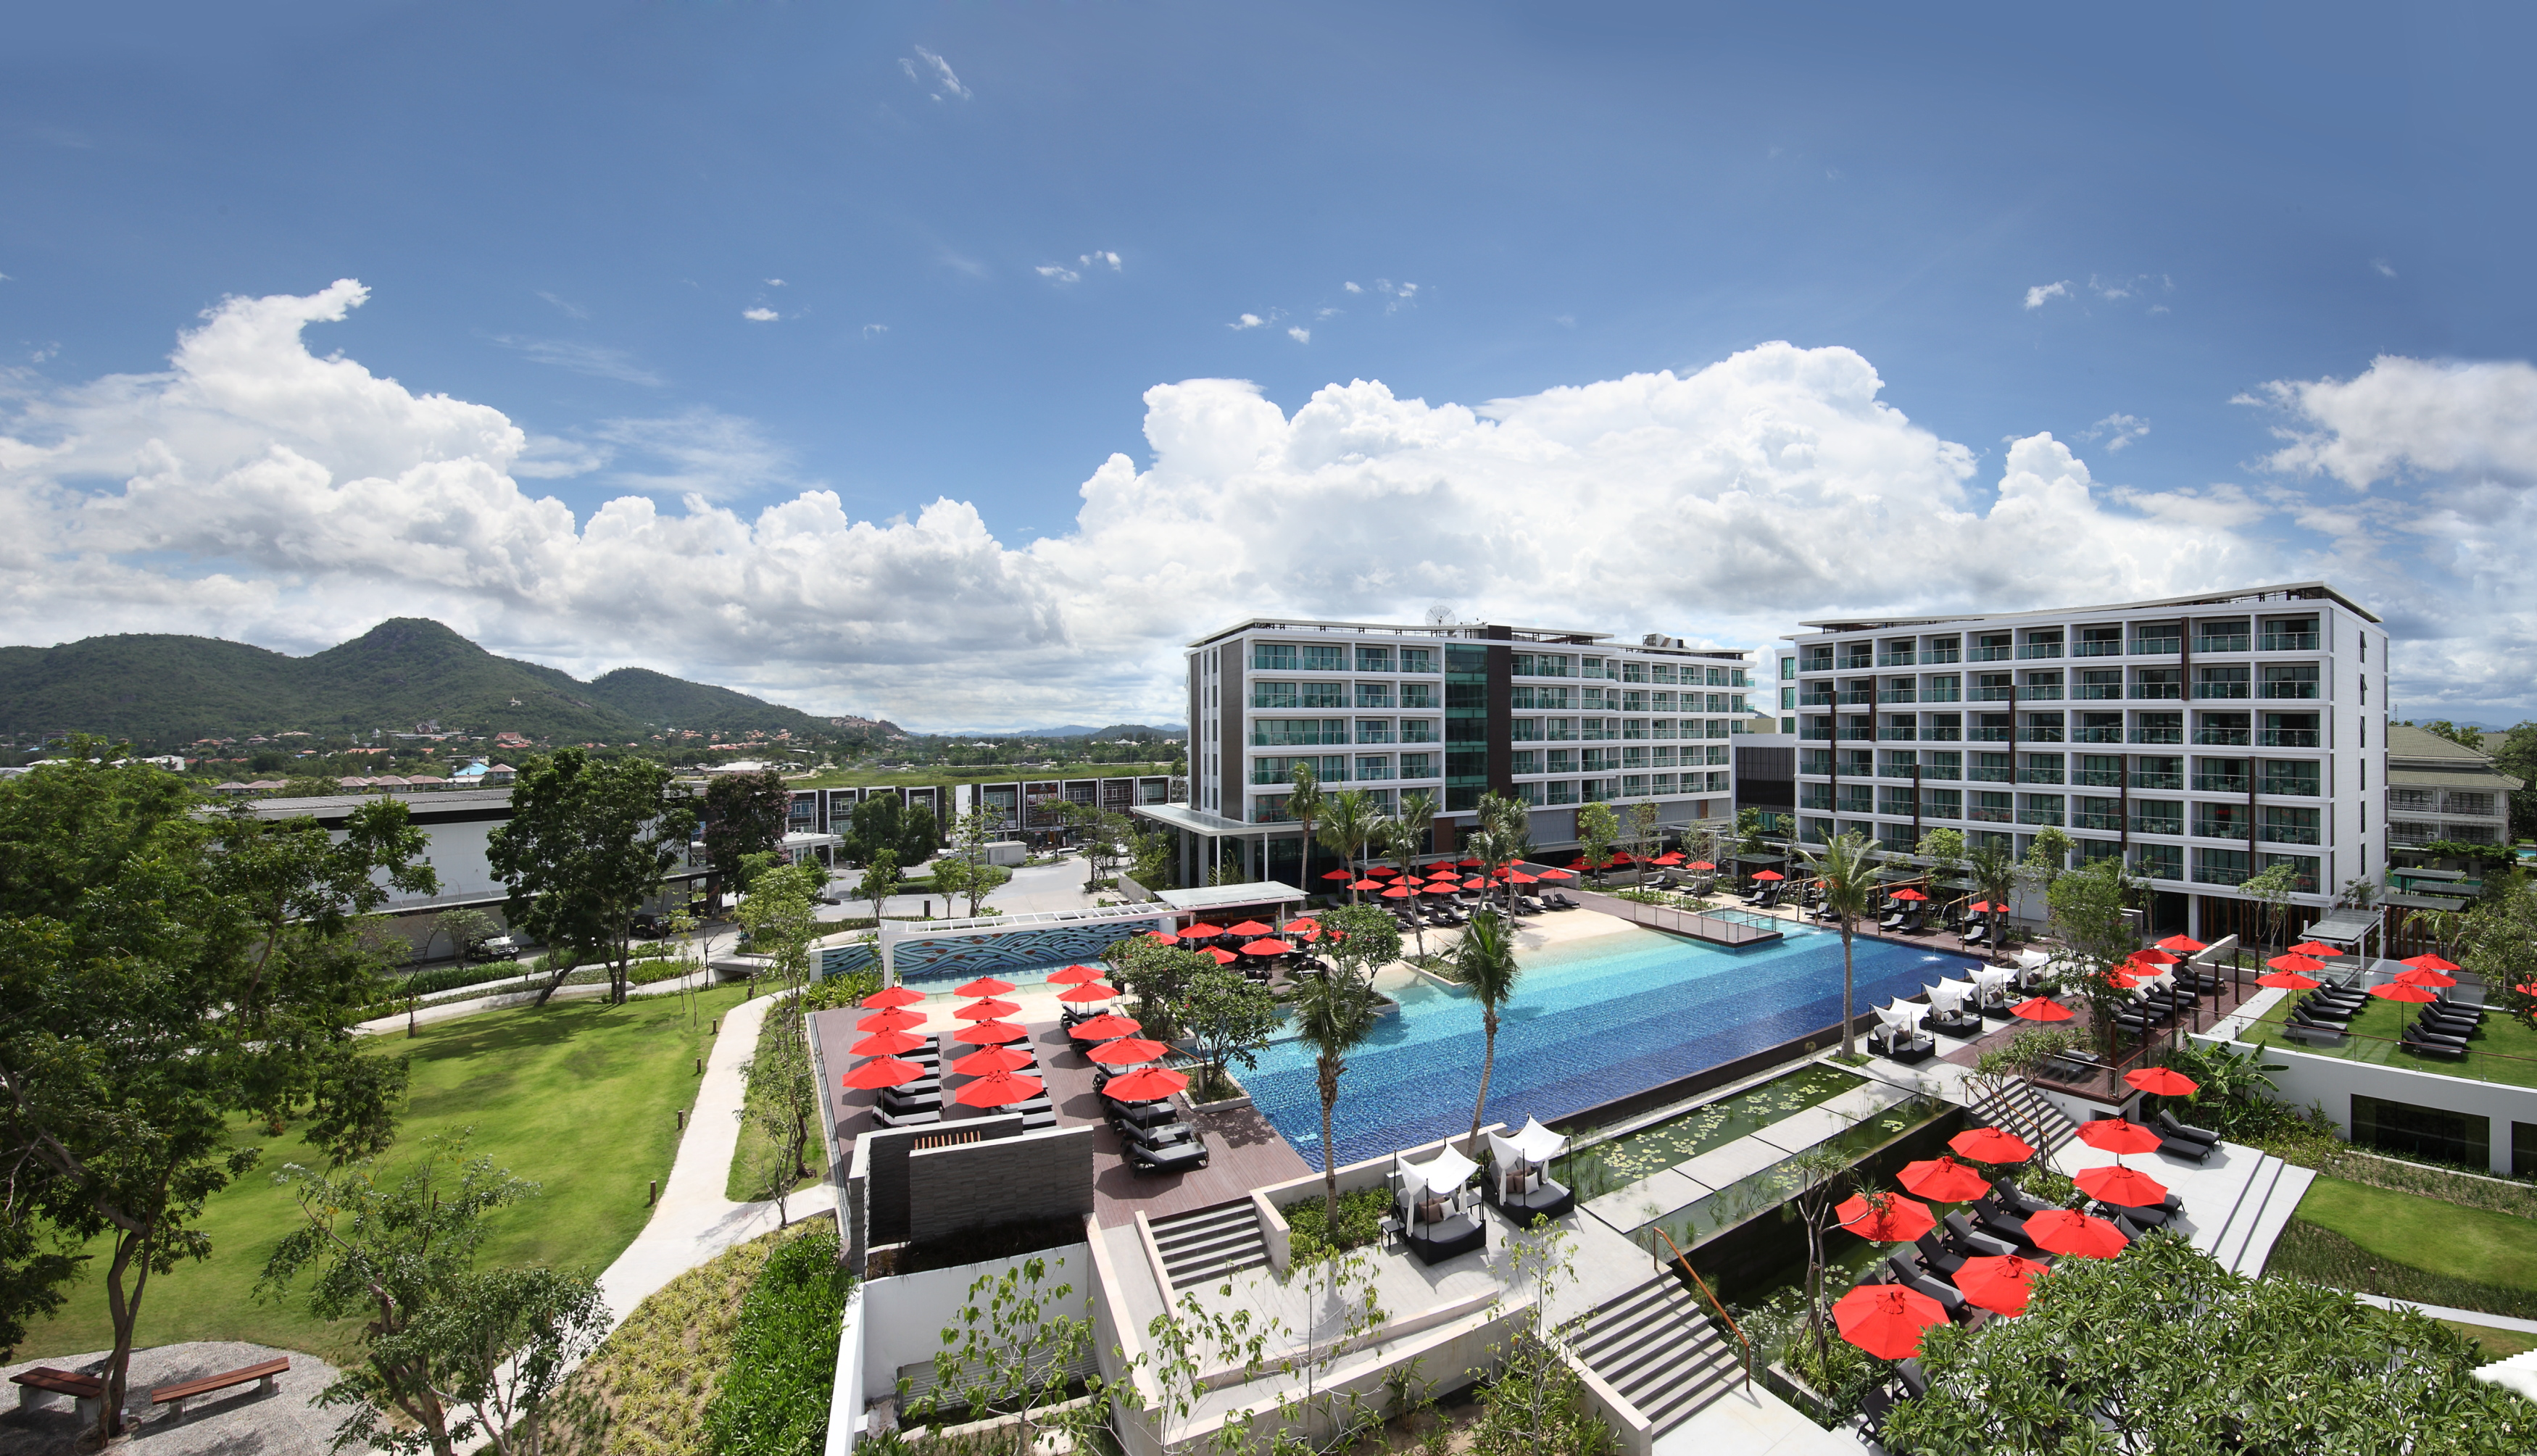 Hua Hin Escapades: Your Vacation, Your Way